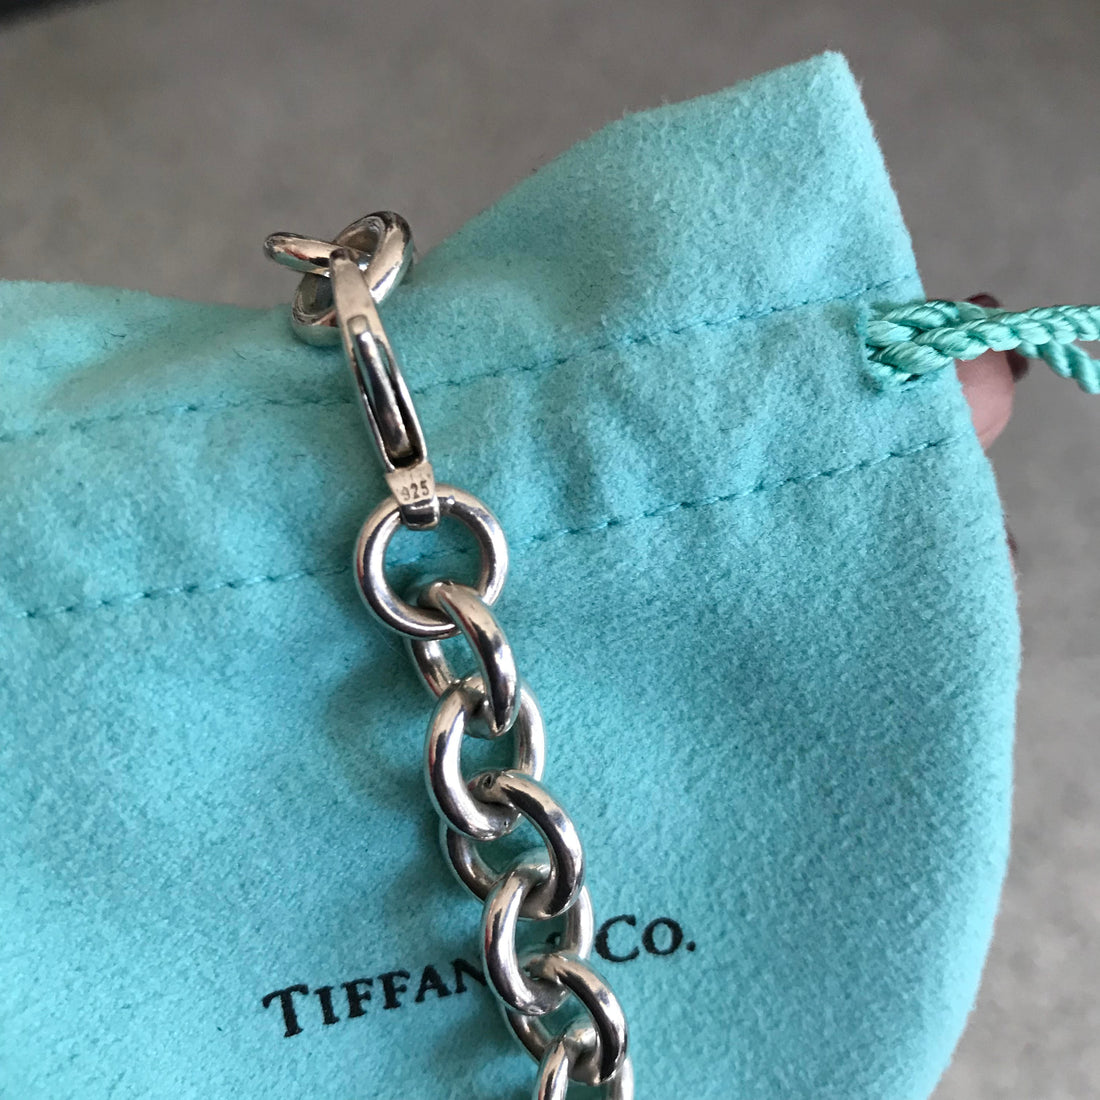 Tiffany and Co. Sterling Silver Heavy Chain Link Choker Necklace